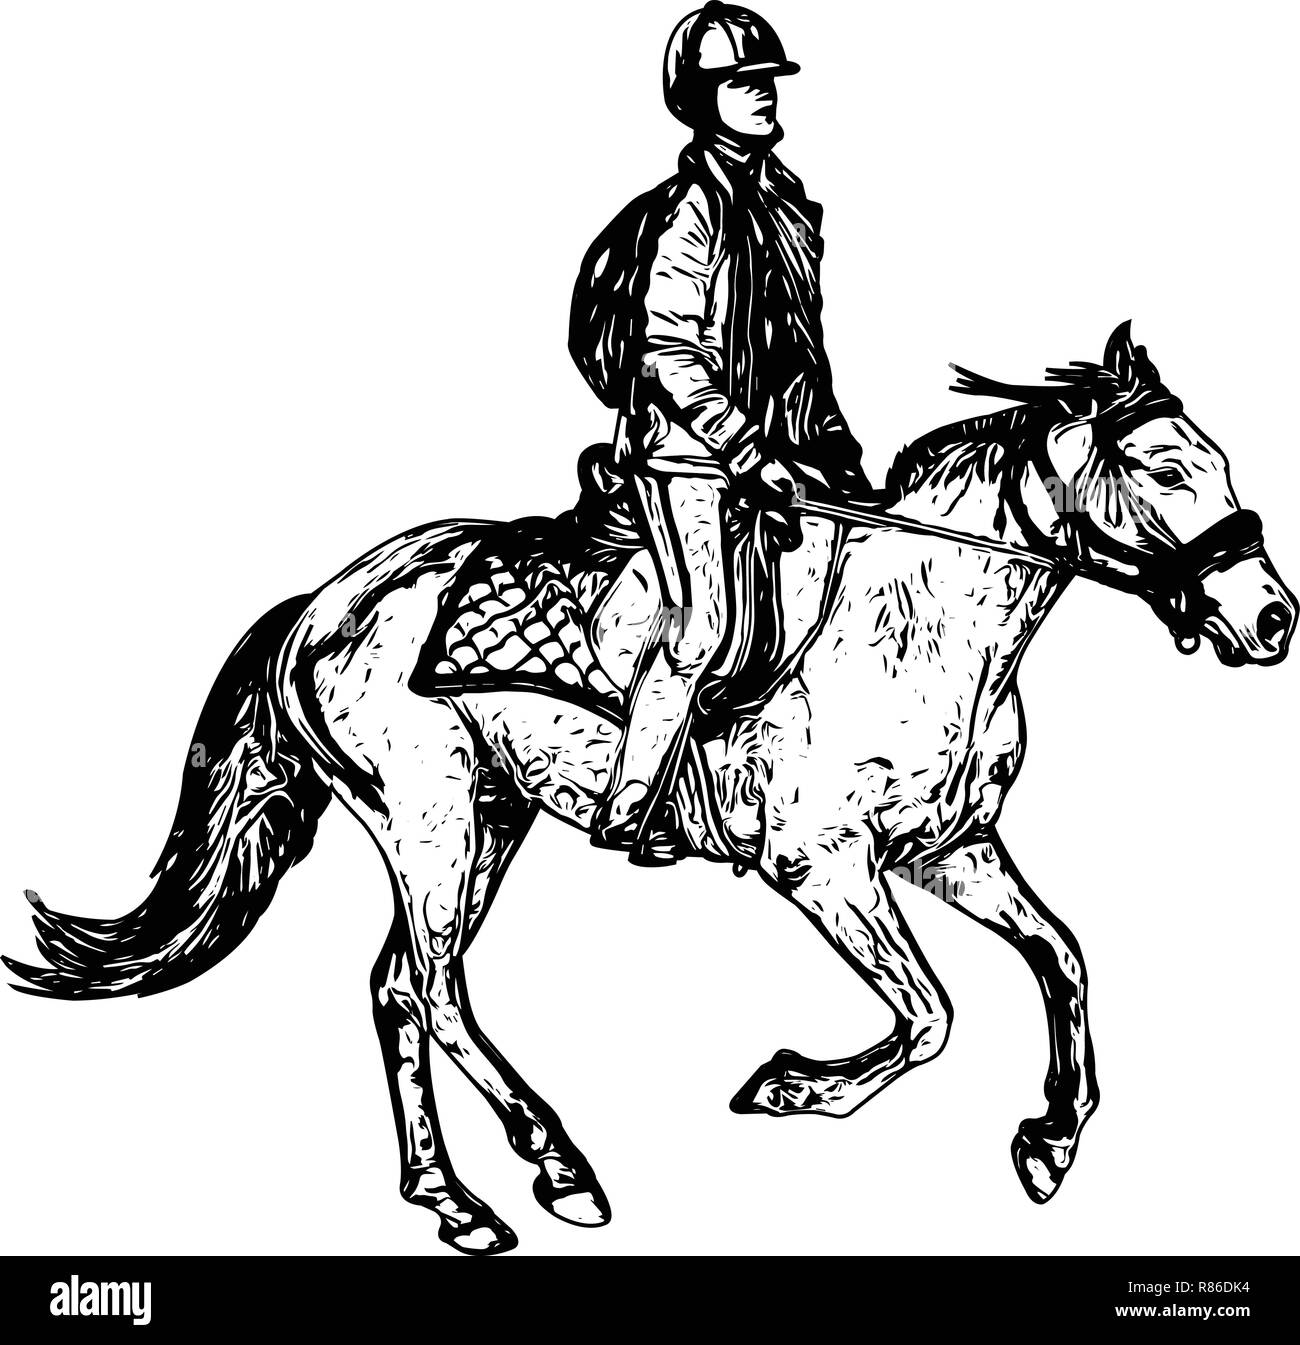 Horse Riding Sketch Drawing Vector Stock Vector Image Art Alamy